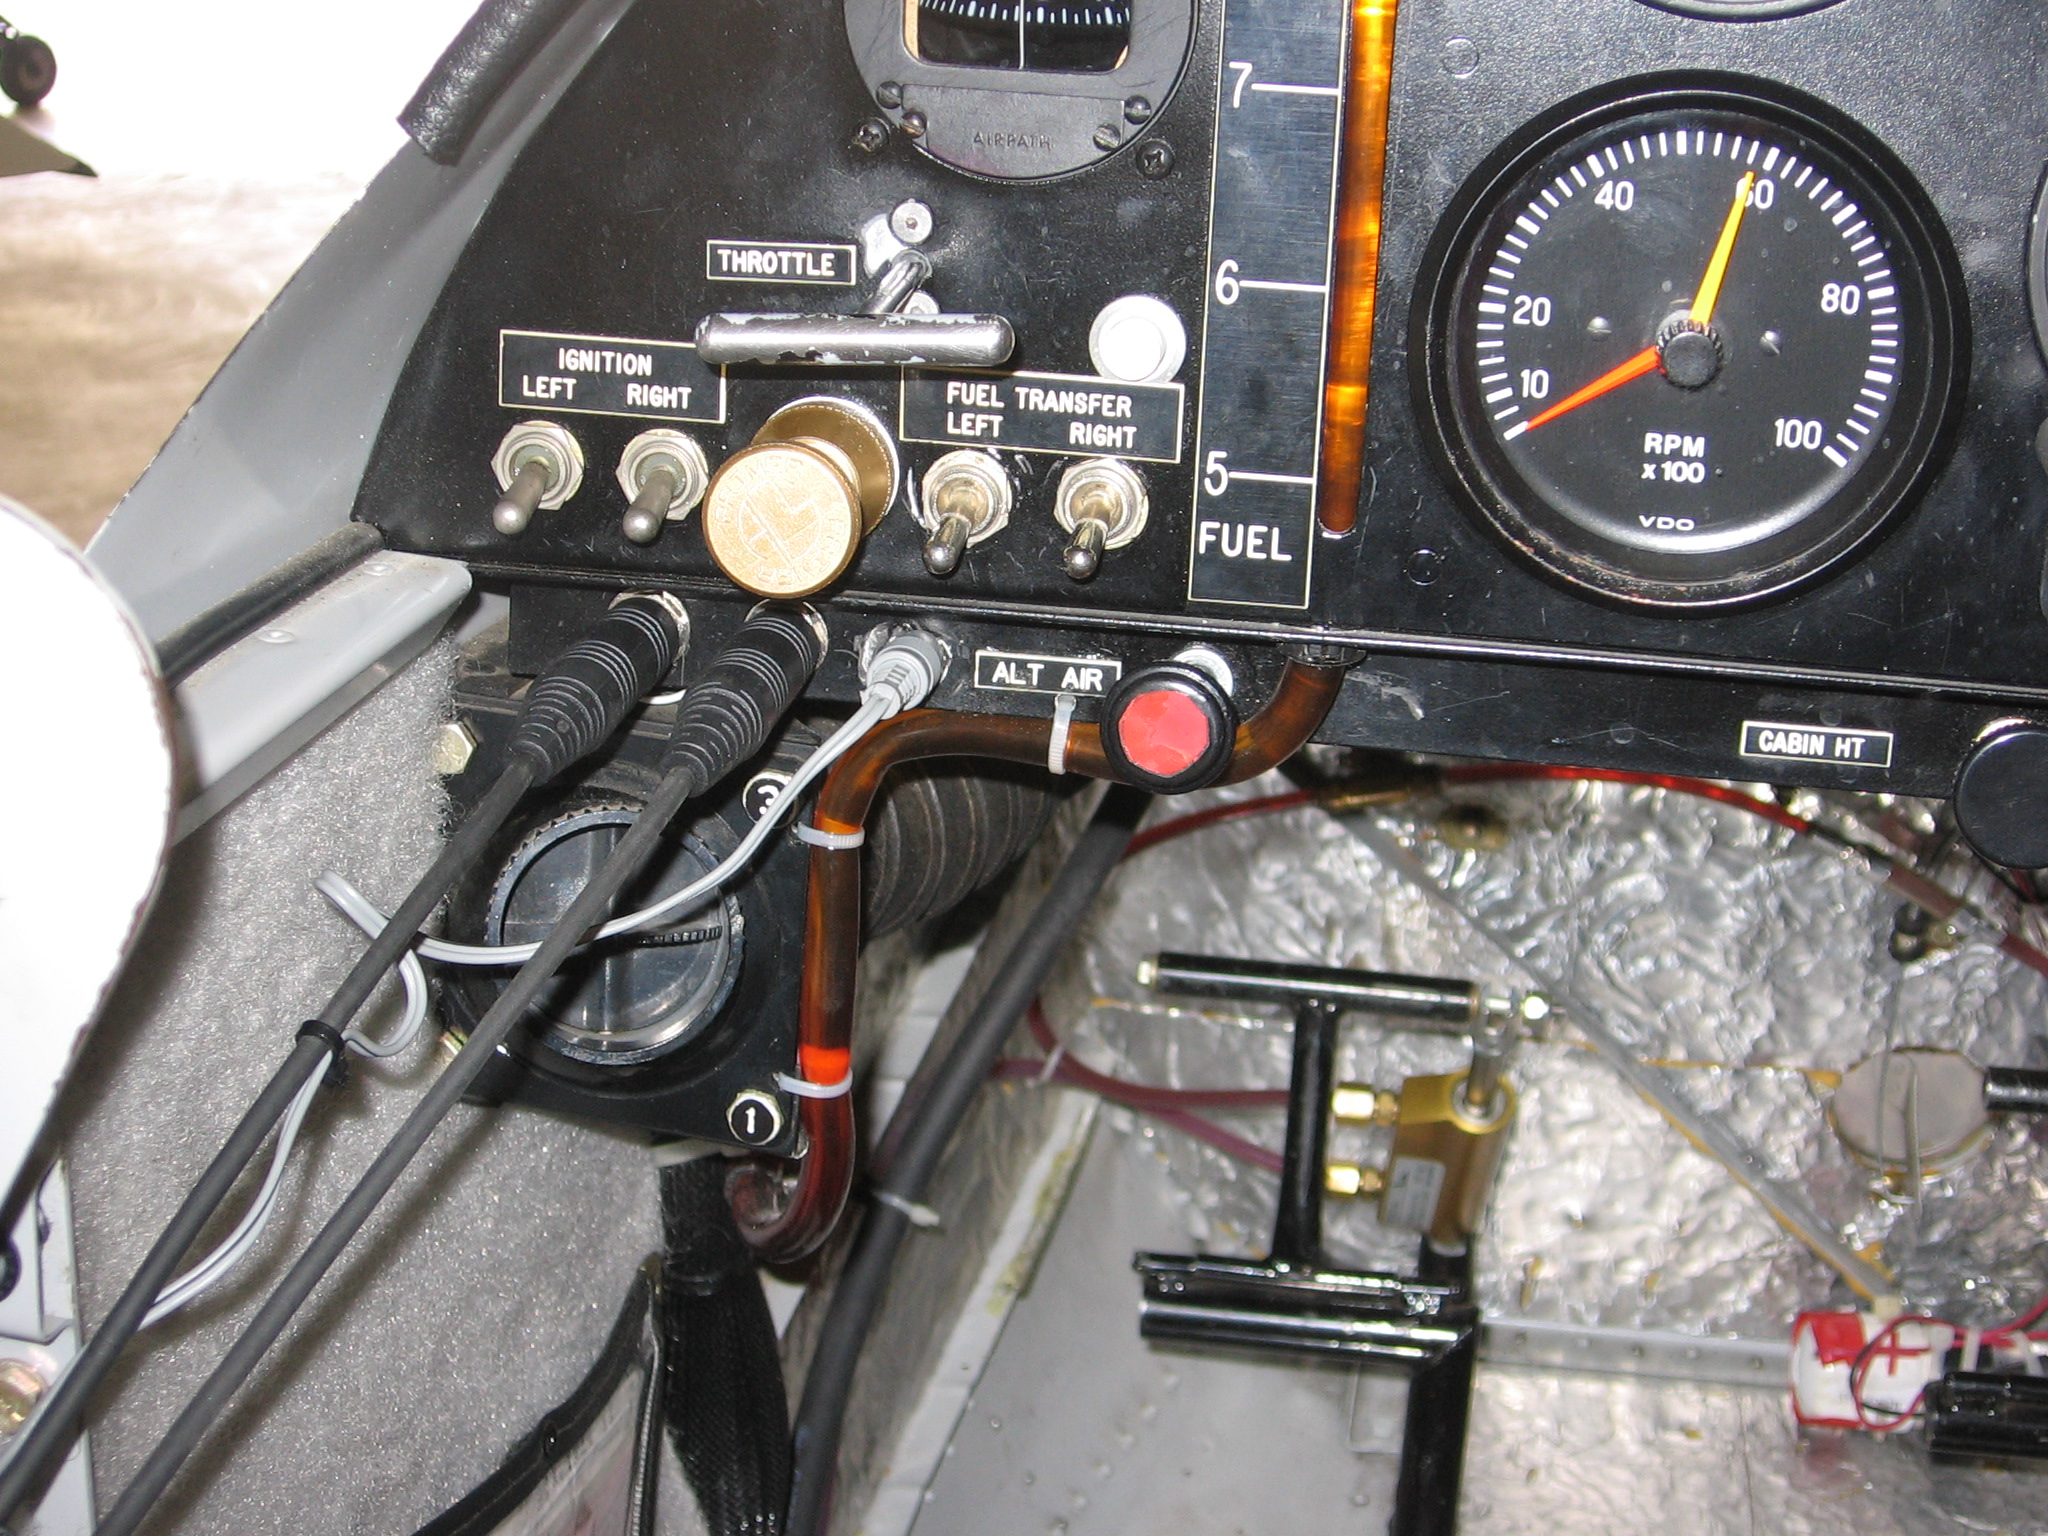 Design Improvements for the Zenith 601 HDS: Ignition Switches